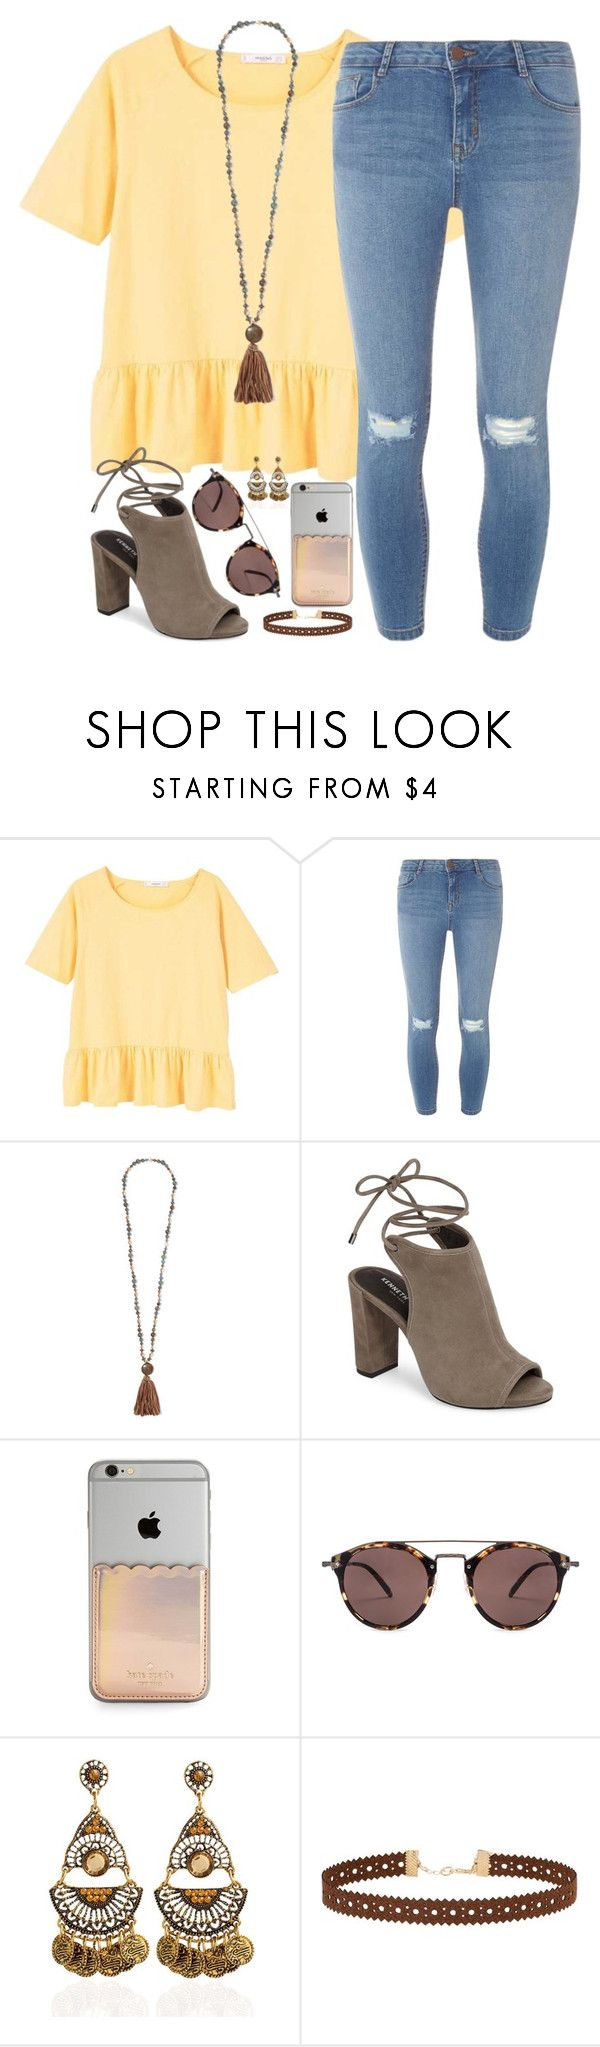 """""""sing us a song, you're the piano man"""" by kaley-ii ❤ liked on Polyvore featuring MANGO, Dorothy Perkins, Chan Luu, Kenneth Cole, Kate Spade, Oliver Peoples and Miss Selfridge"""